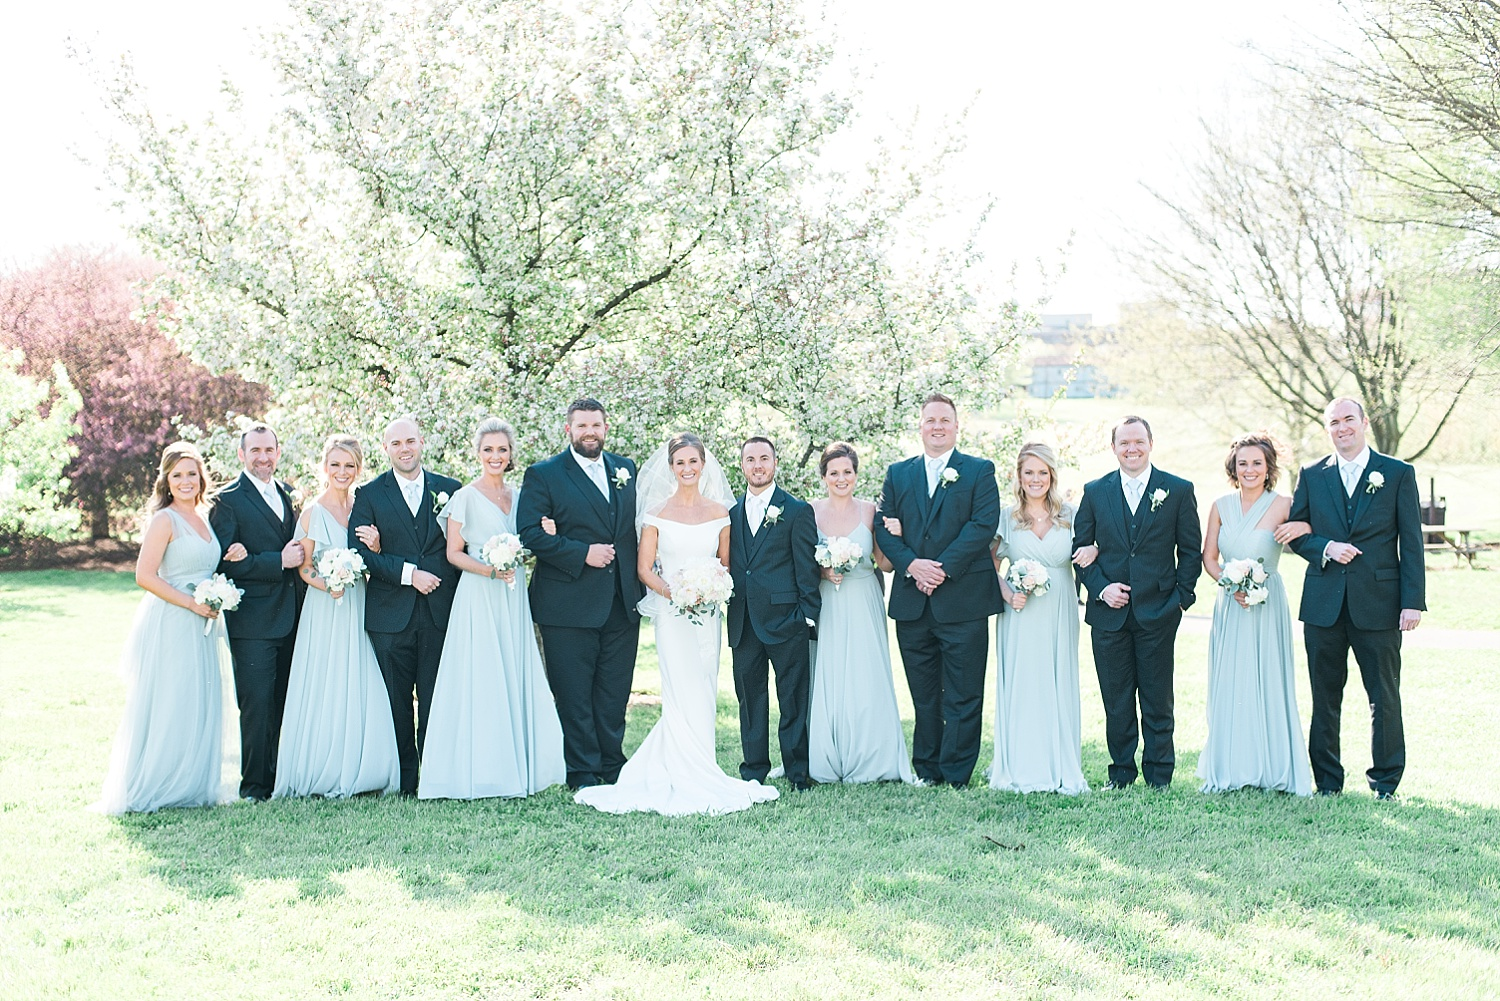 We went to the Arboretum for the wedding party & bride/groom portraits!  So pretty!